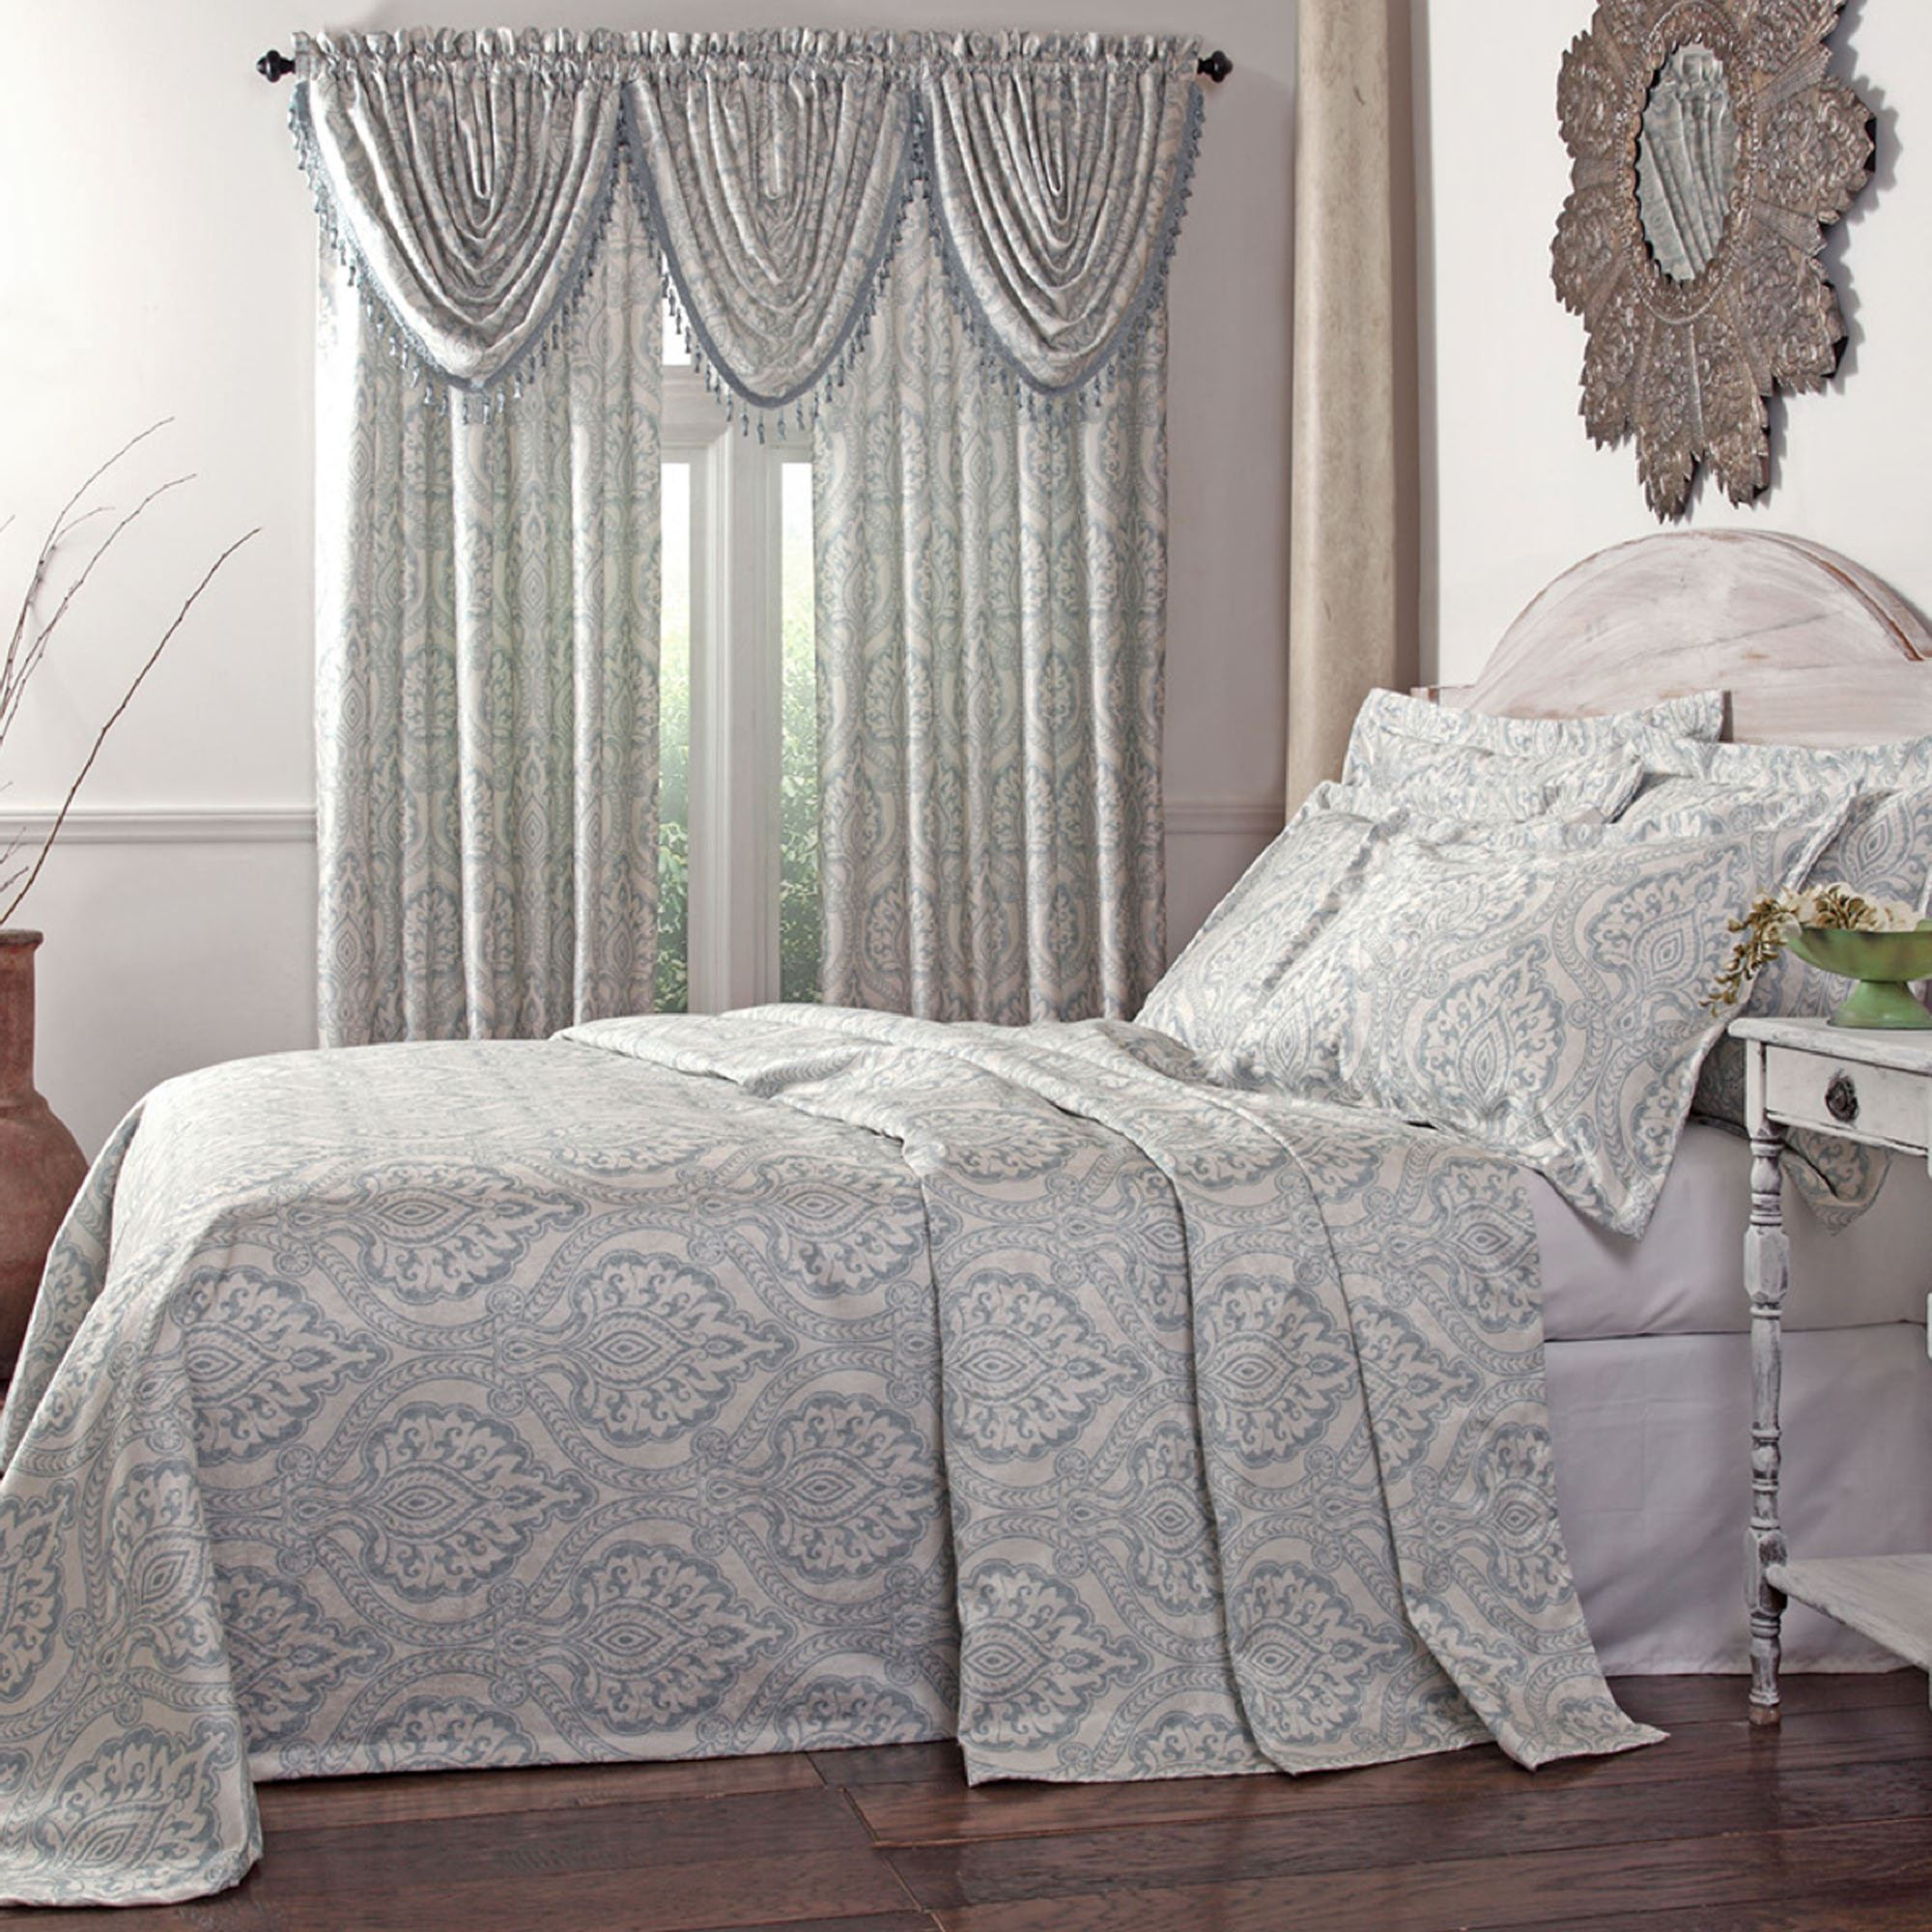 Breathtaking damask bedding for bed decorating ideas with damask bedding set and damask crib bedding